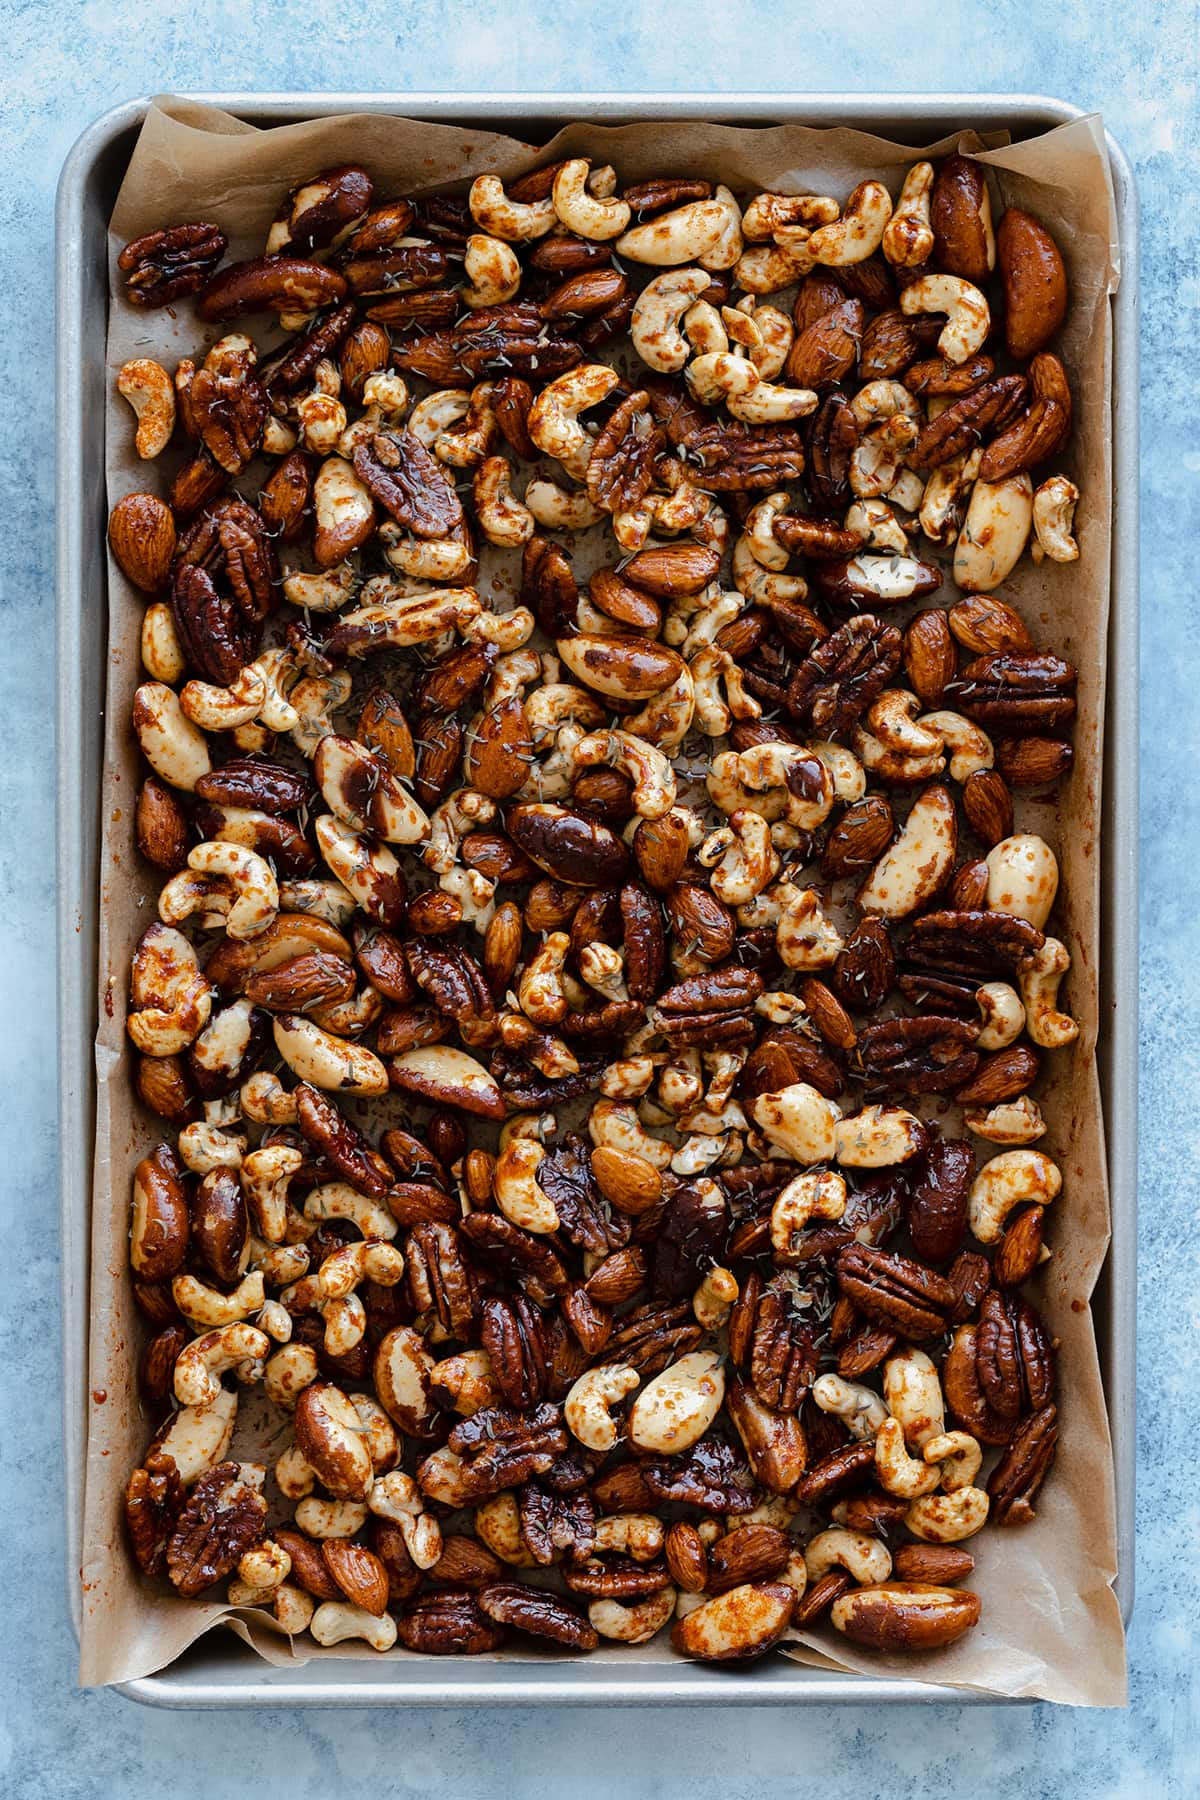 Raw nuts tossed in oil, maple syrup, and cajun spice on a baking sheet lined with baking paper.